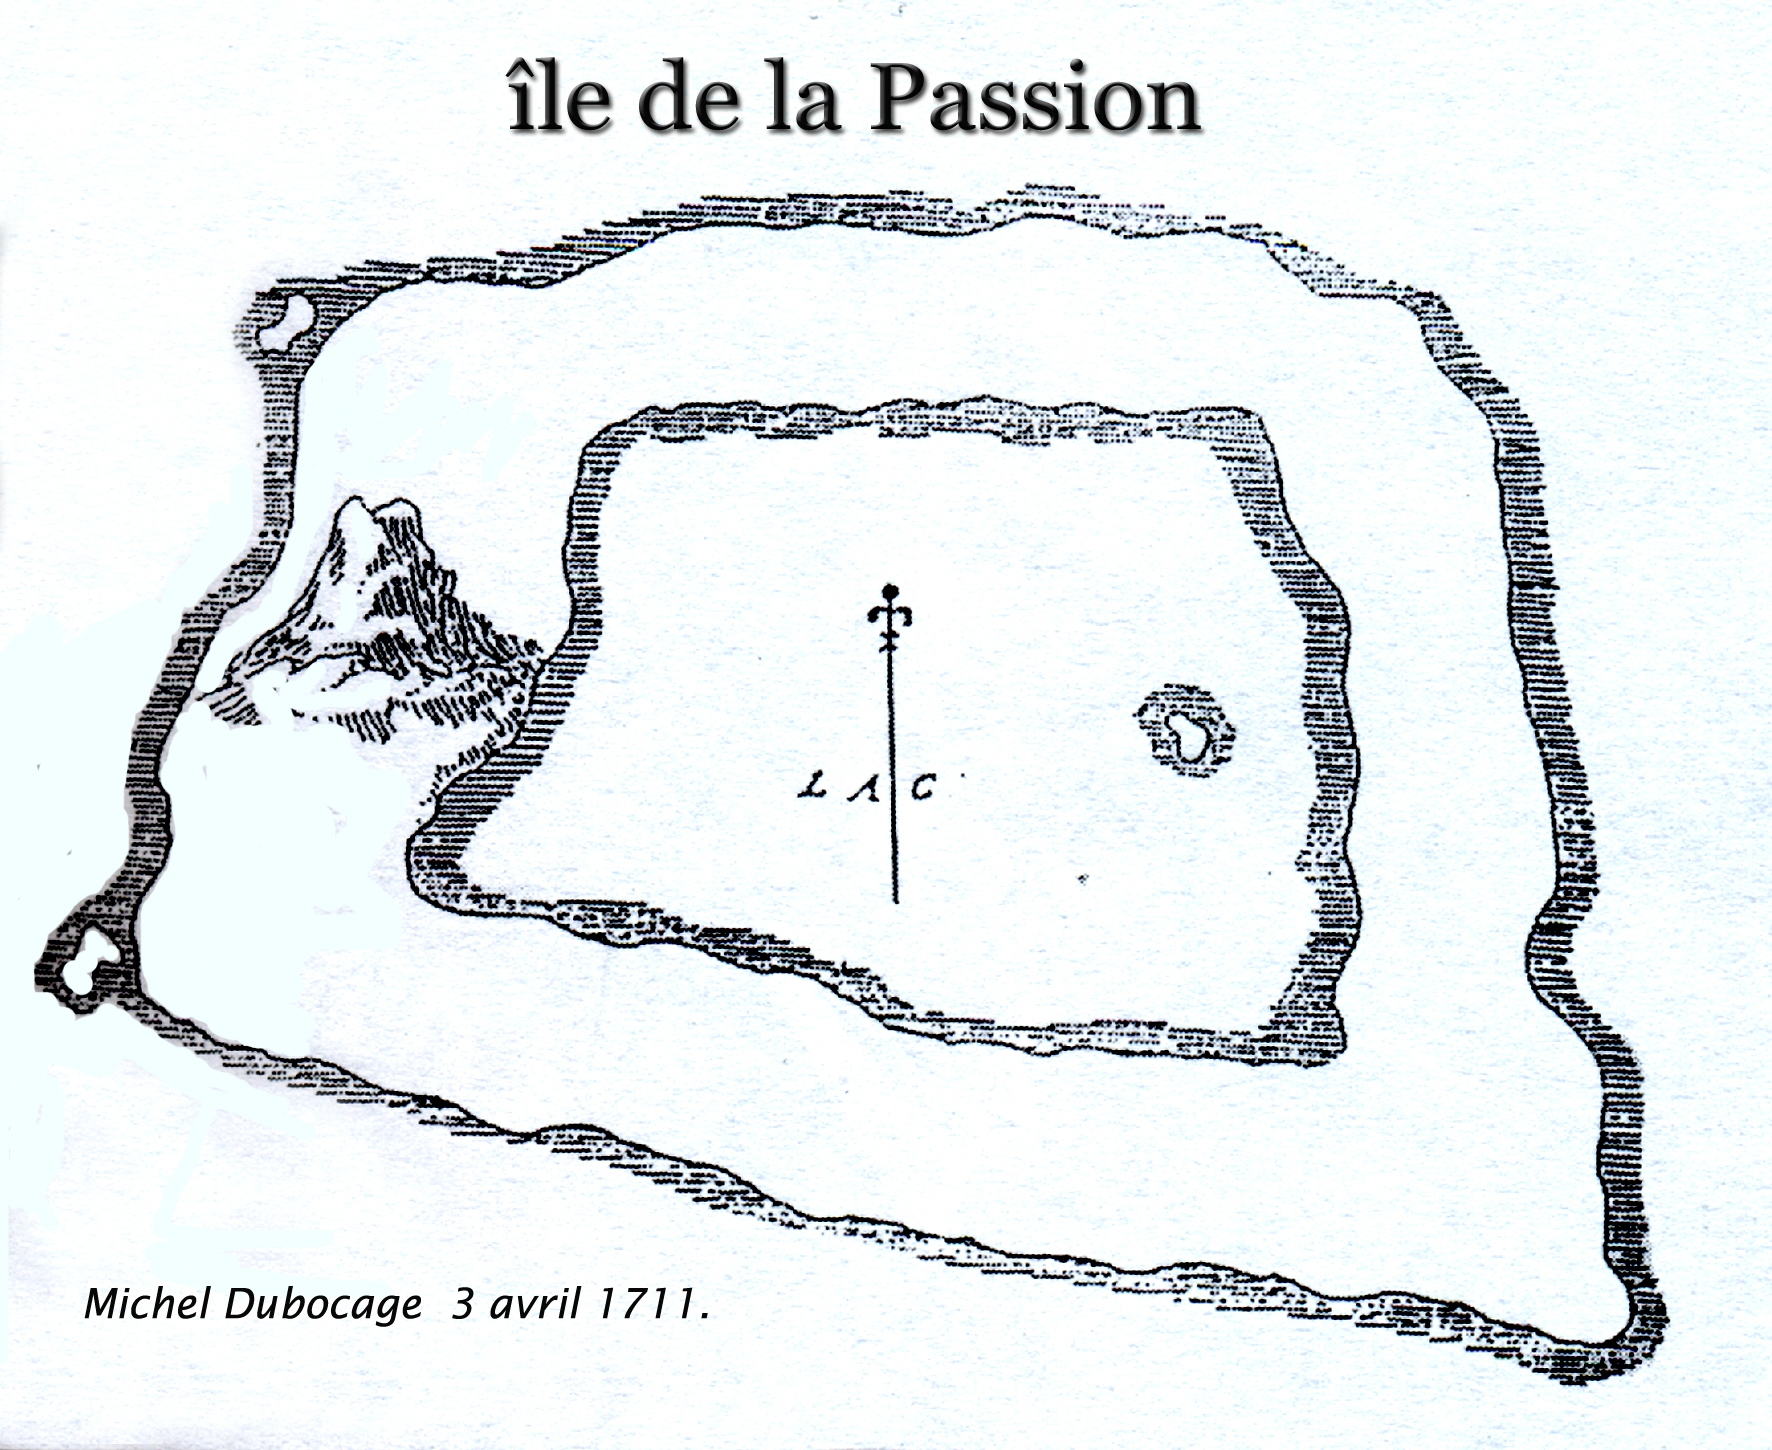 clipperton,pacifique,ile de la passion,sciences,aventures,christian jost,philippe folliot,stéphane dugast